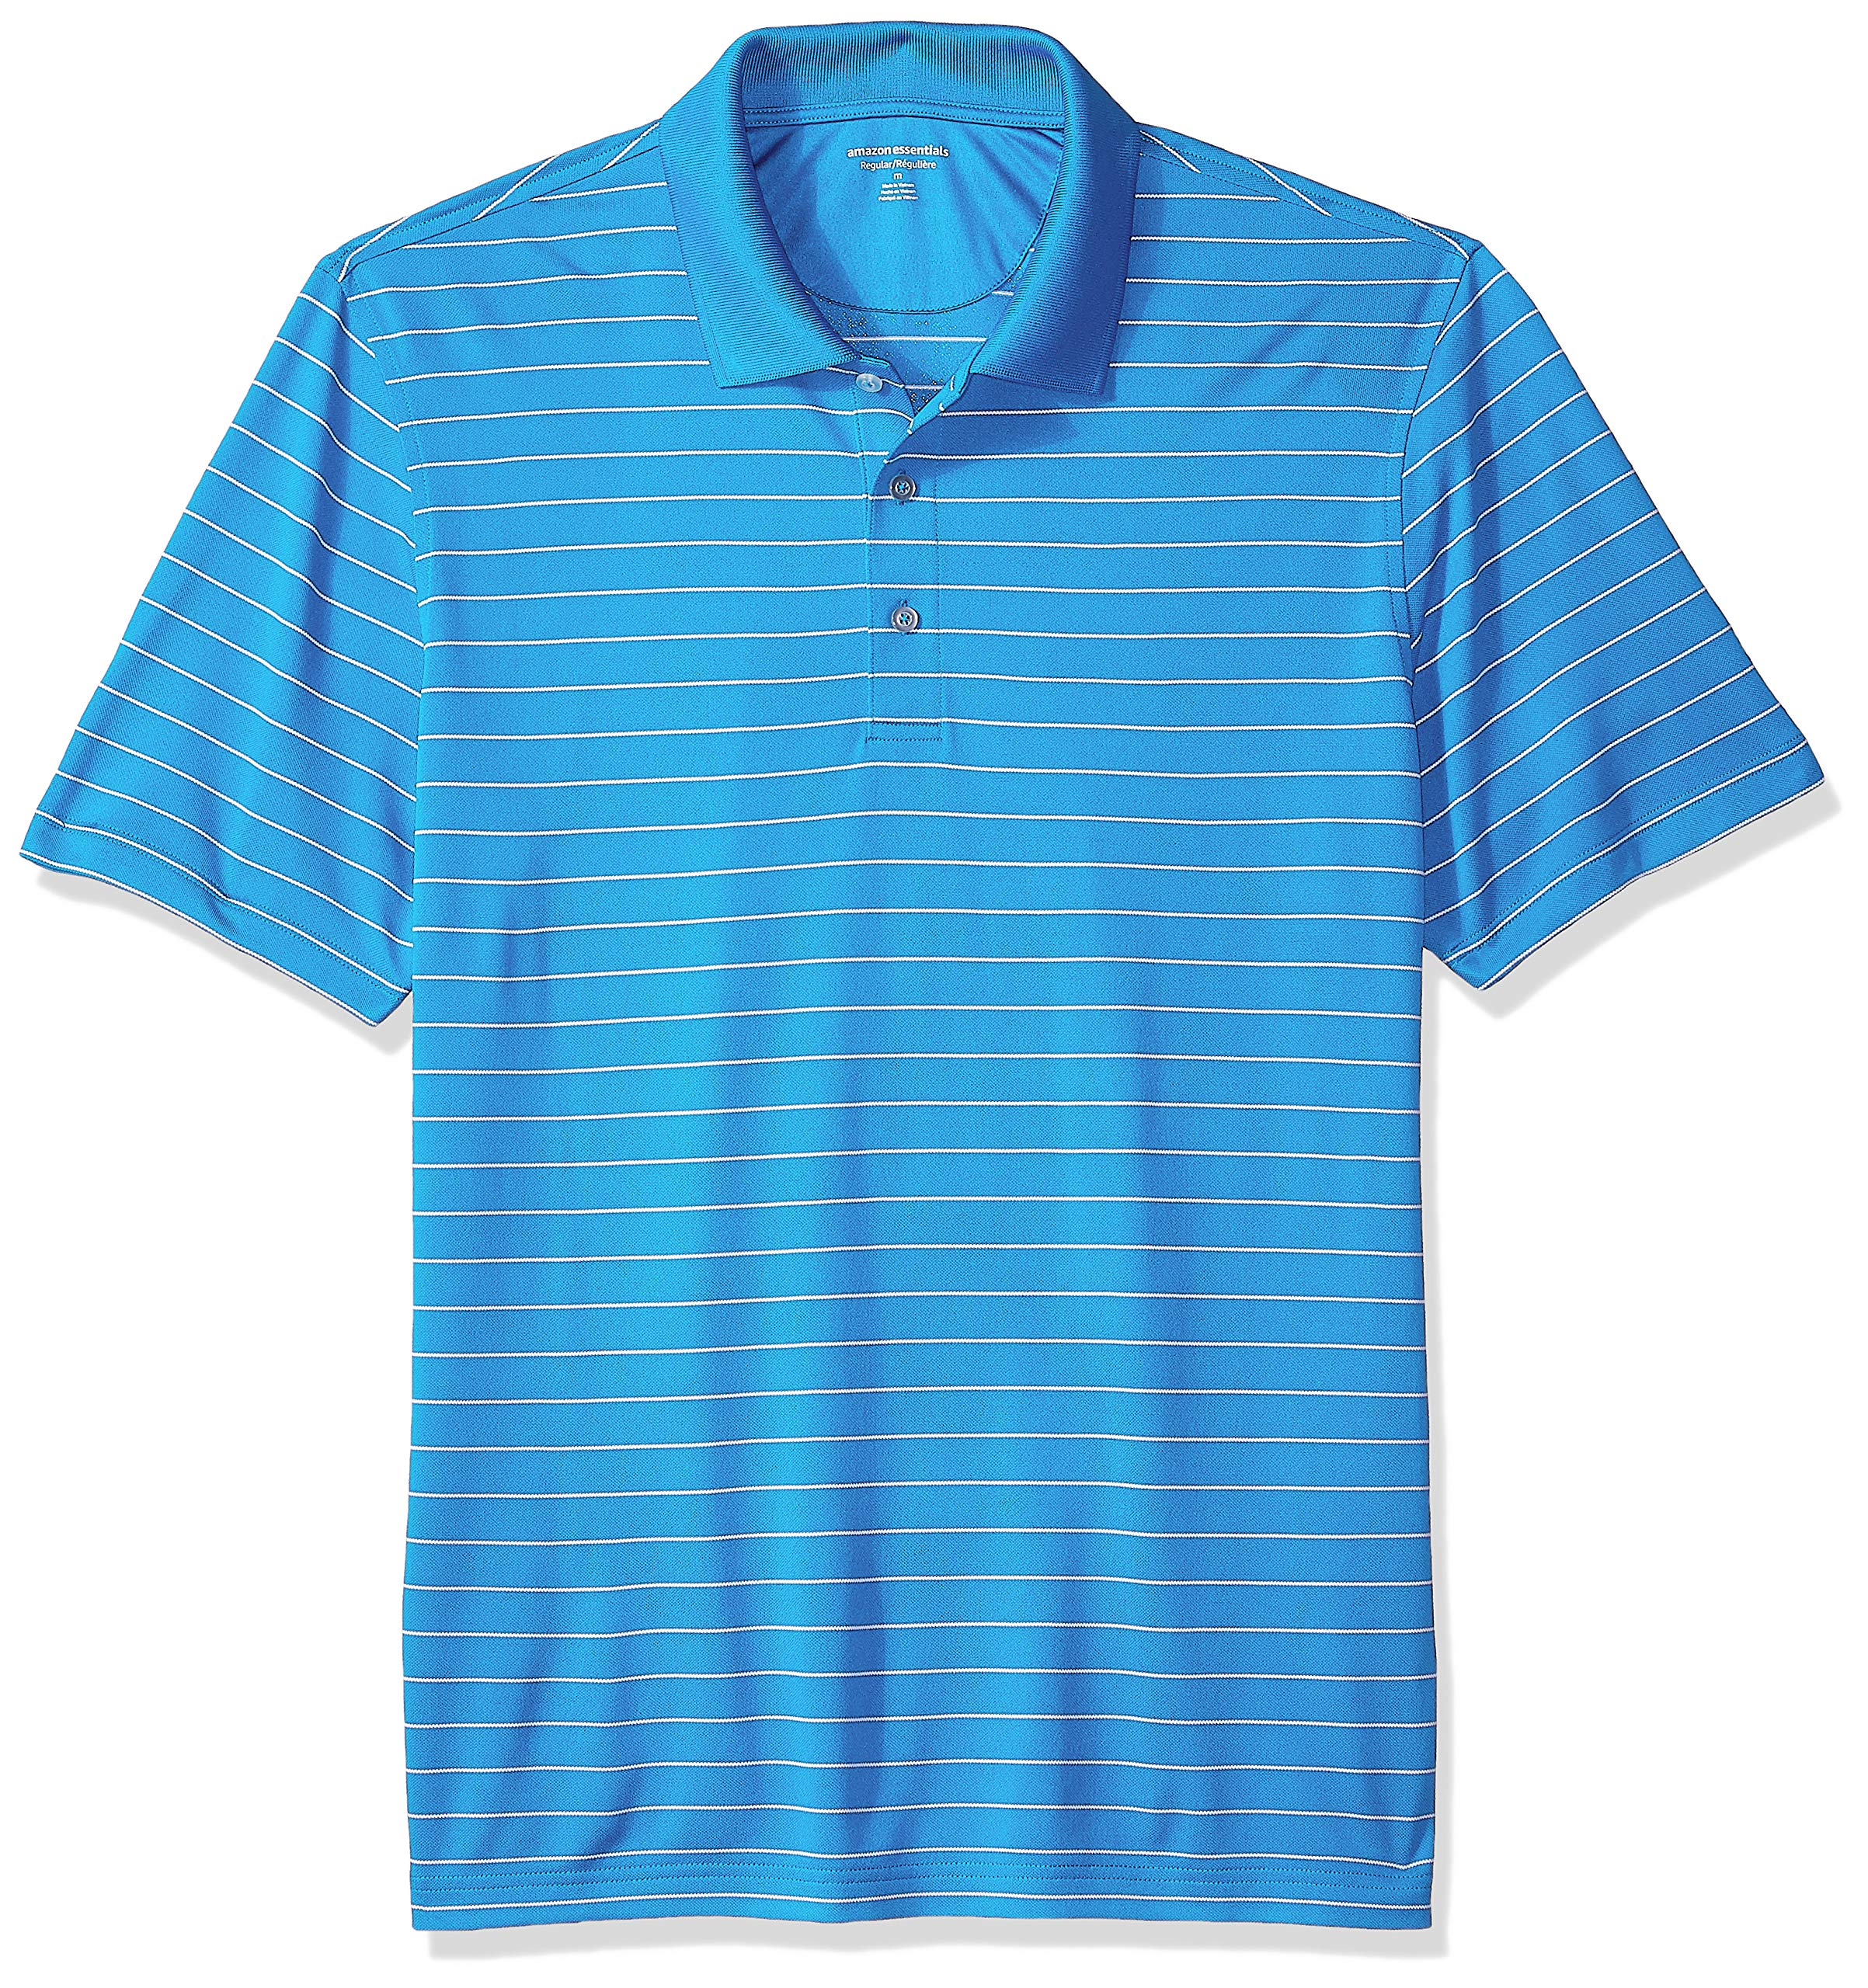 Amazon Essentials Men's Regular-Fit Quick-Dry Golf Polo Shirt, Electric Blue Stripe, X-Small